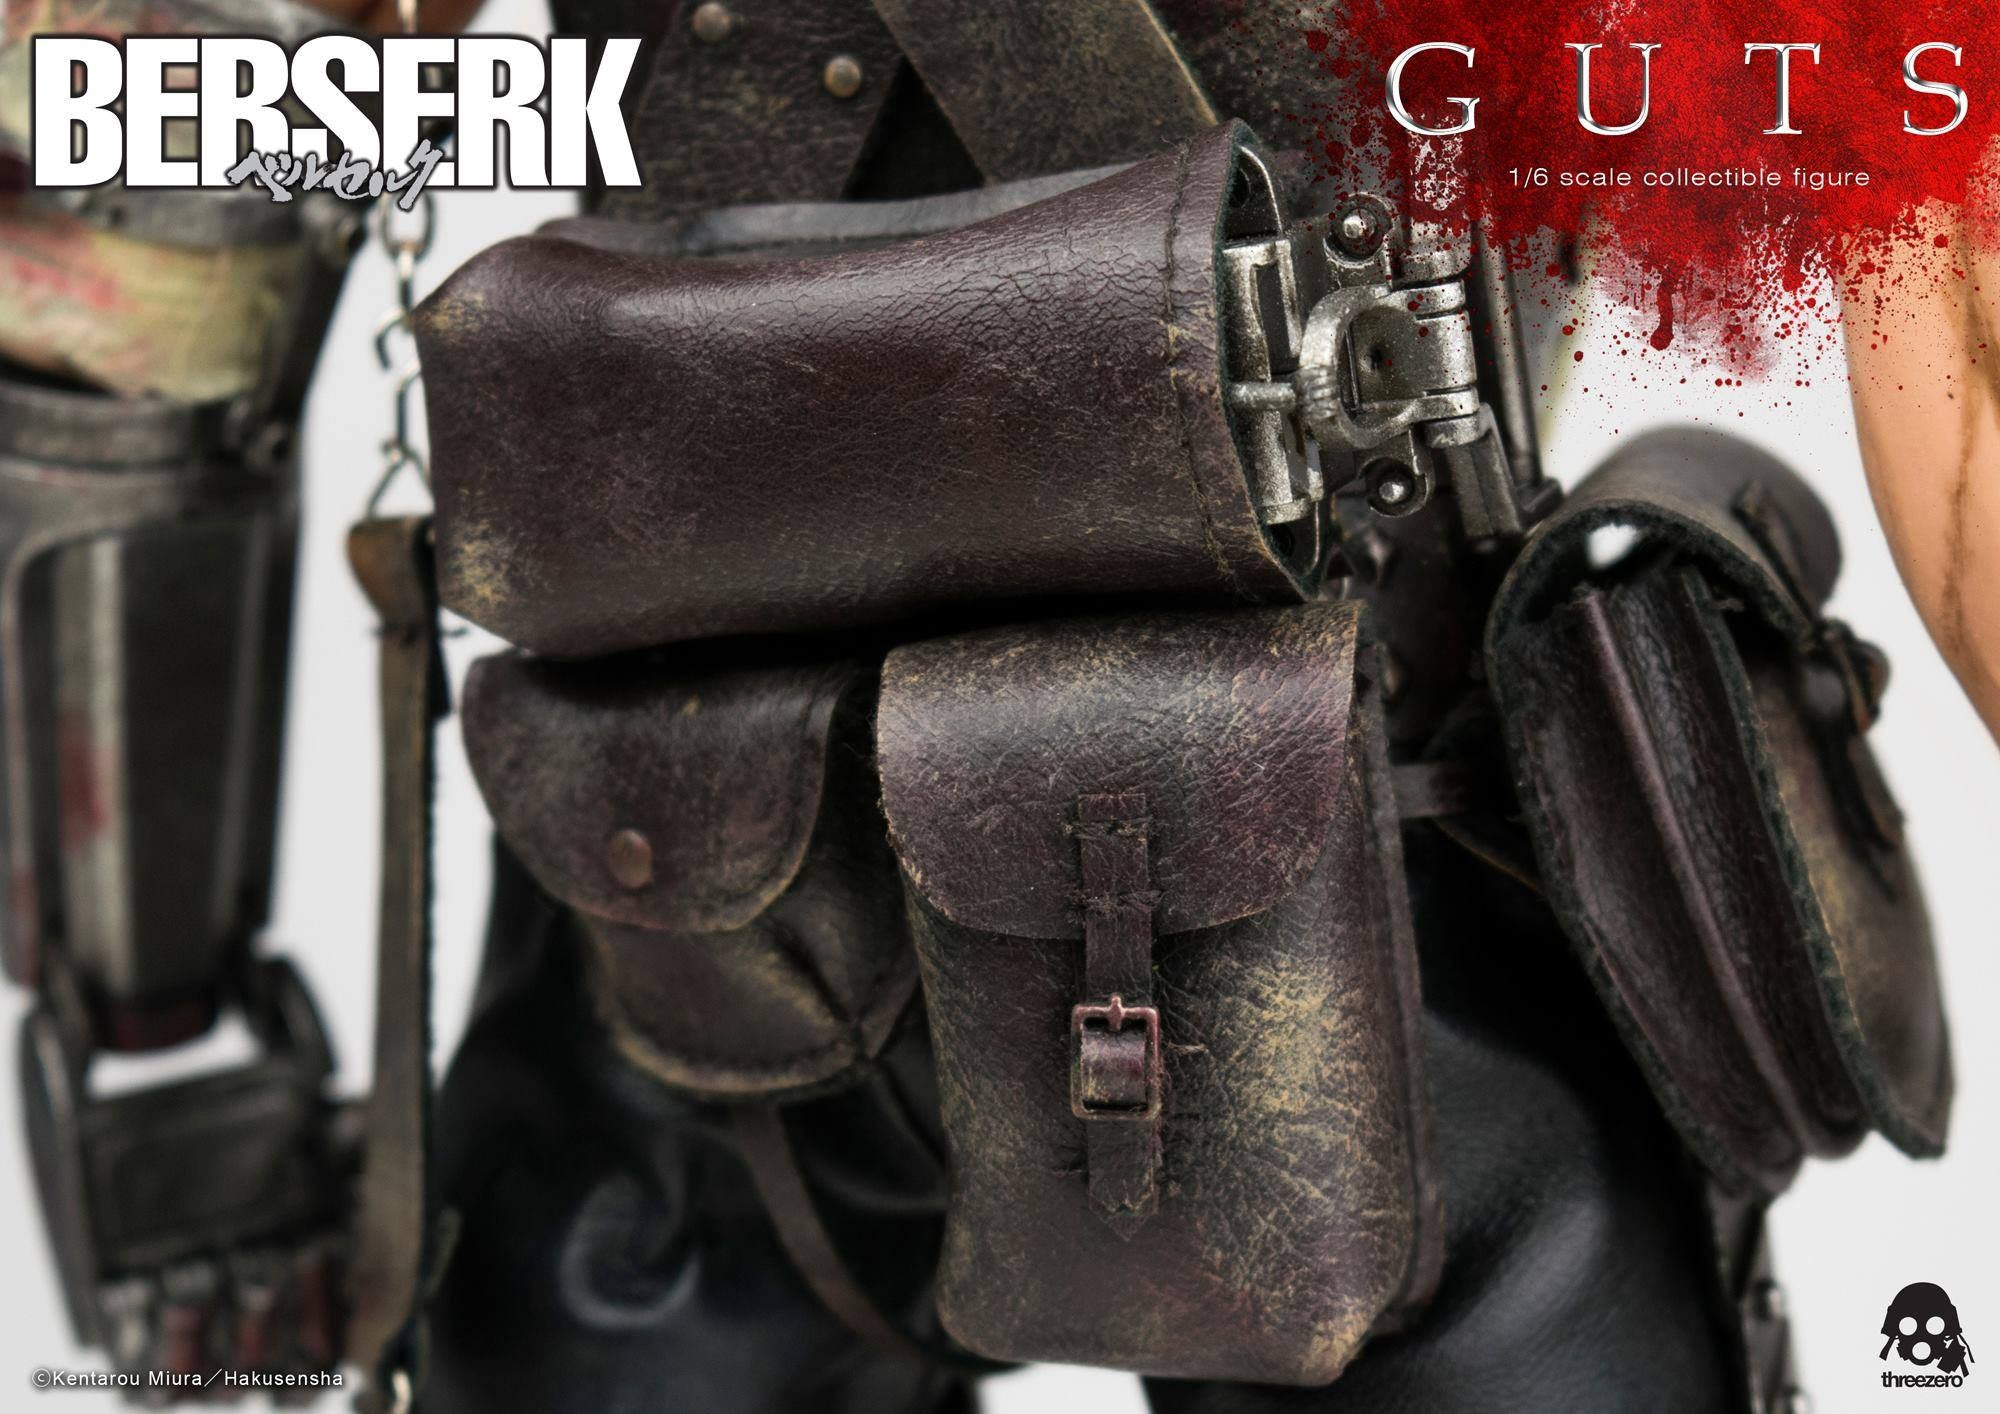 Threezero - Berserk - Guts (Reissue) - Marvelous Toys - 16